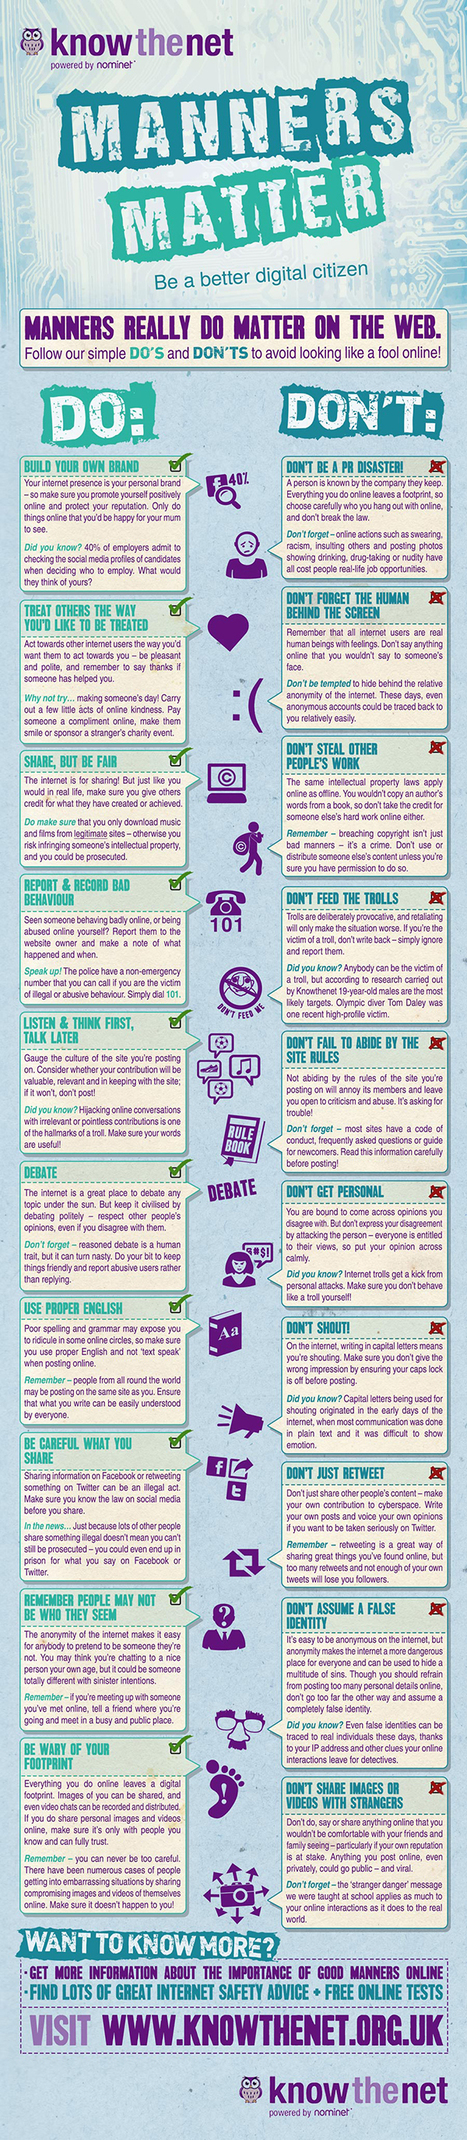 10 Important Things for Students to Be Good Digital Citizens [infographic] | The Creative Commons | Scoop.it